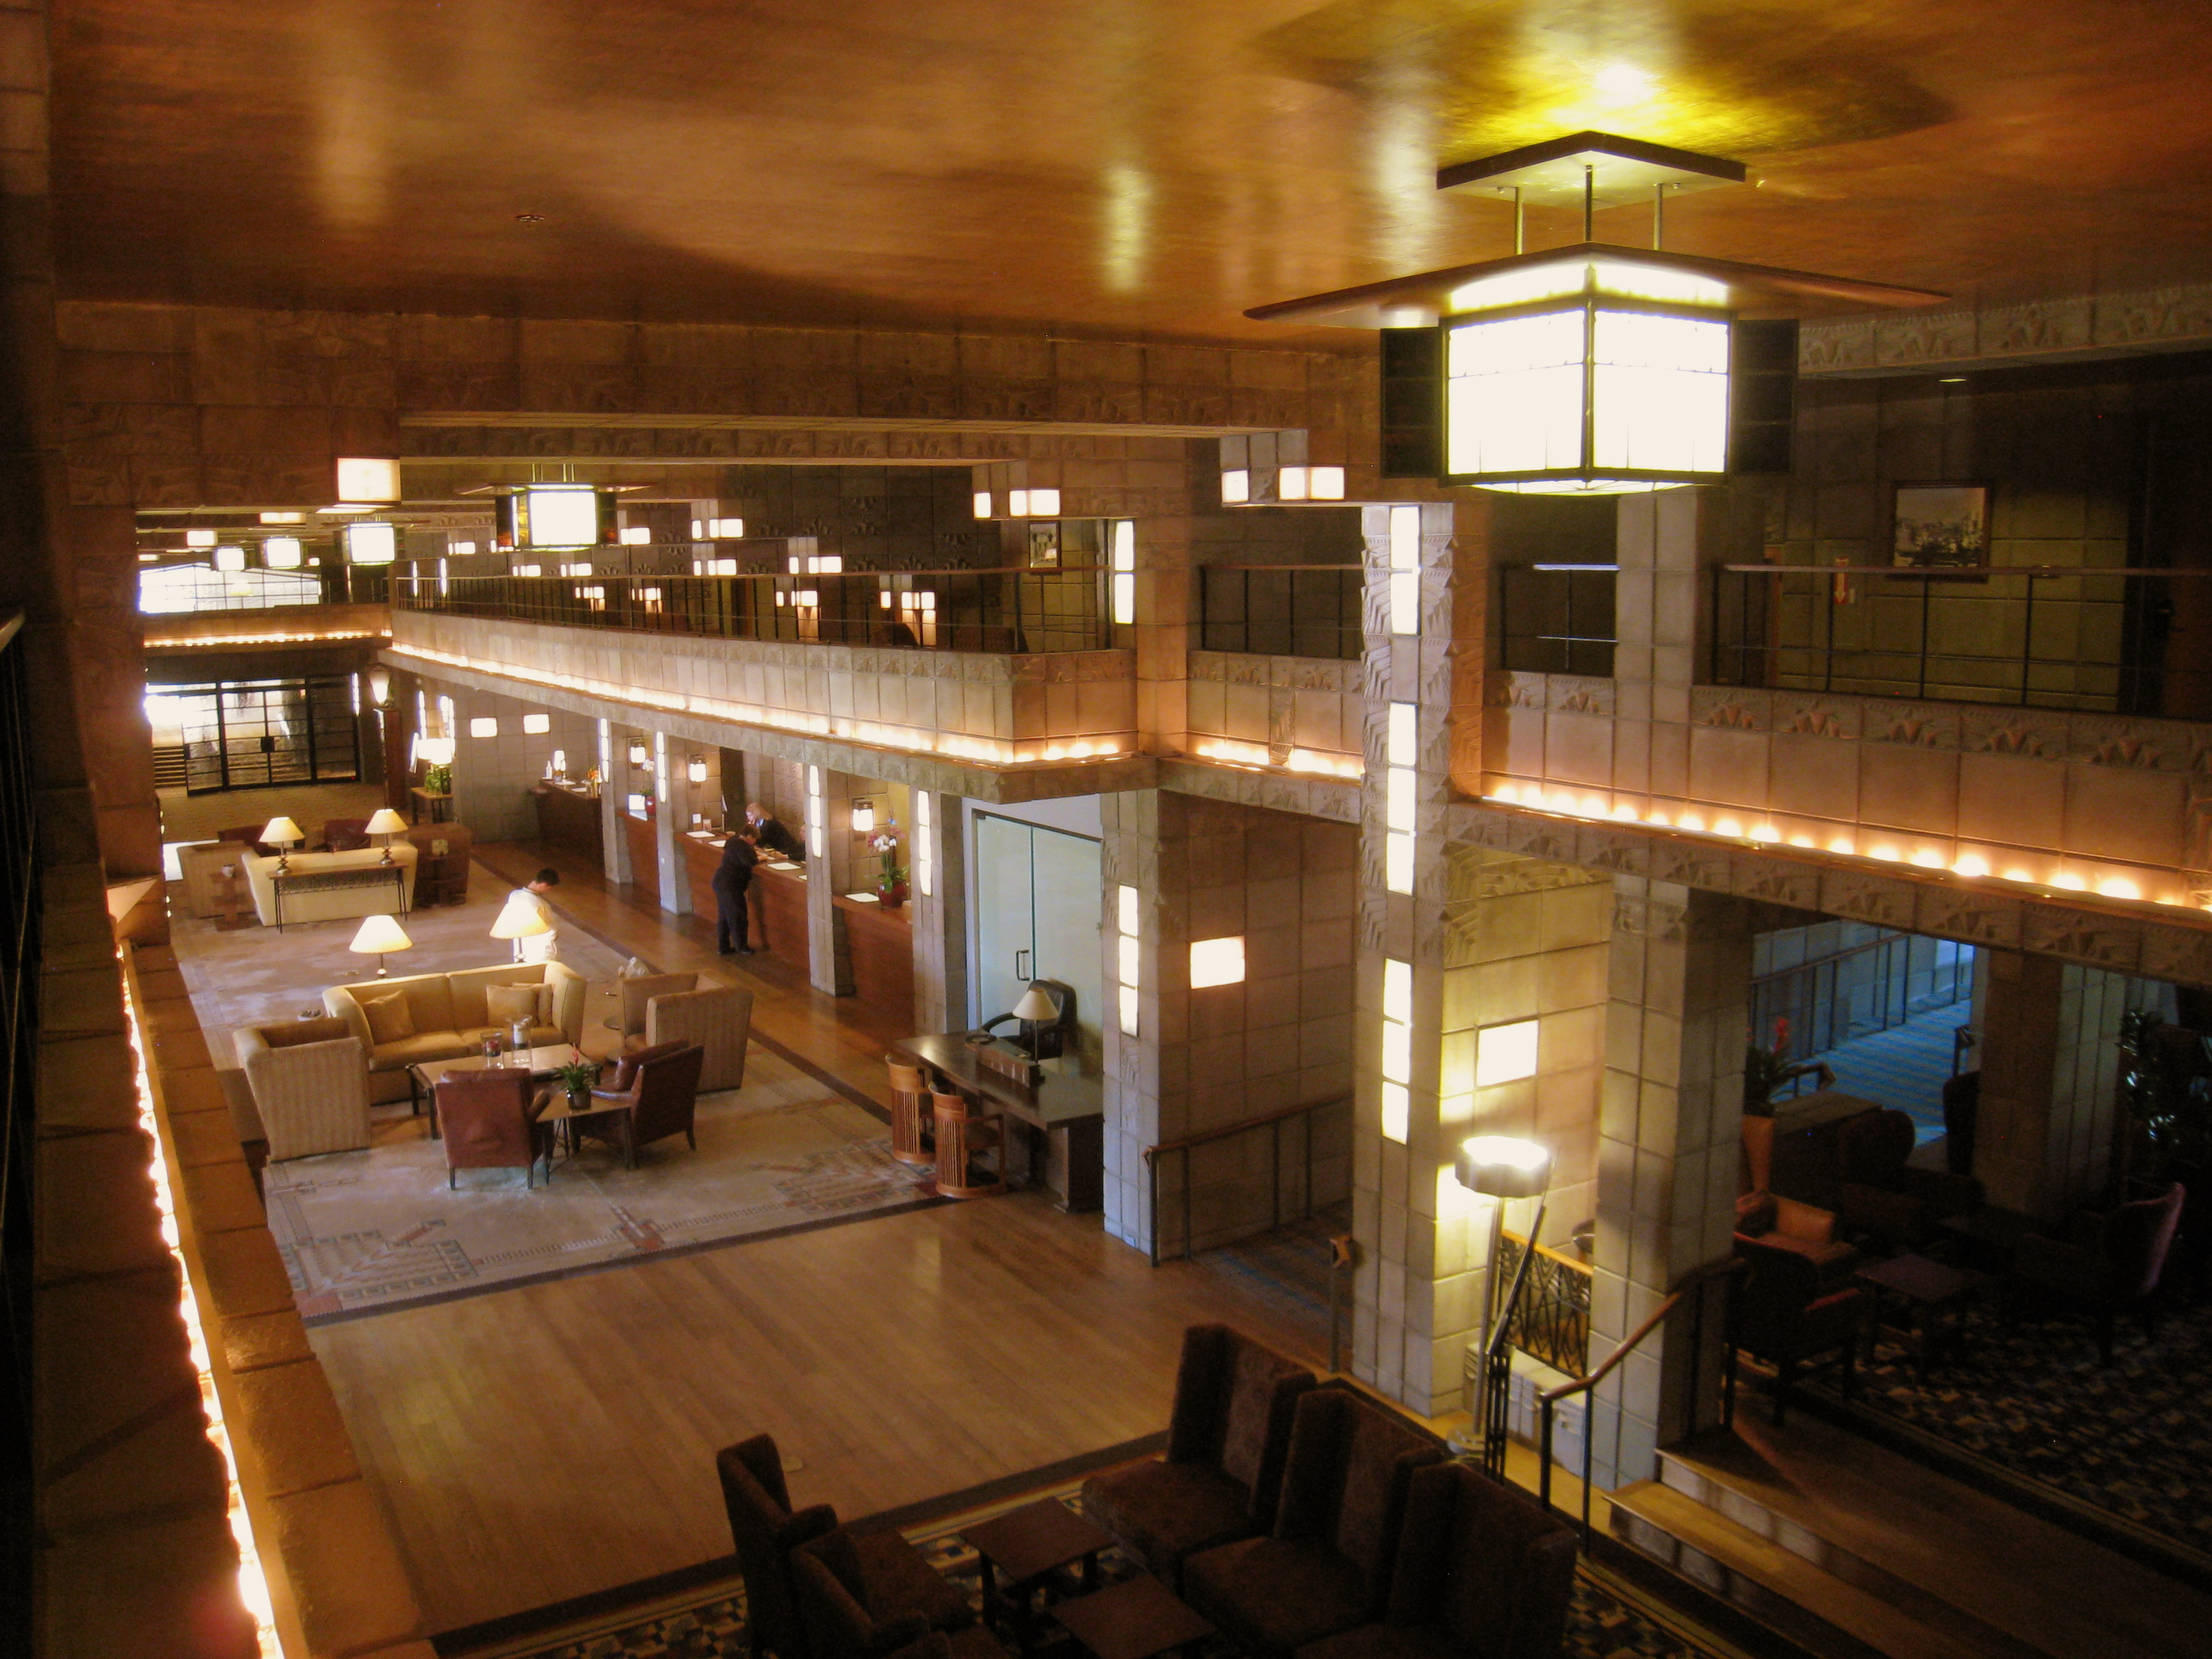 File:Arizona Biltmore - interior 3.JPG - Wikimedia Commons